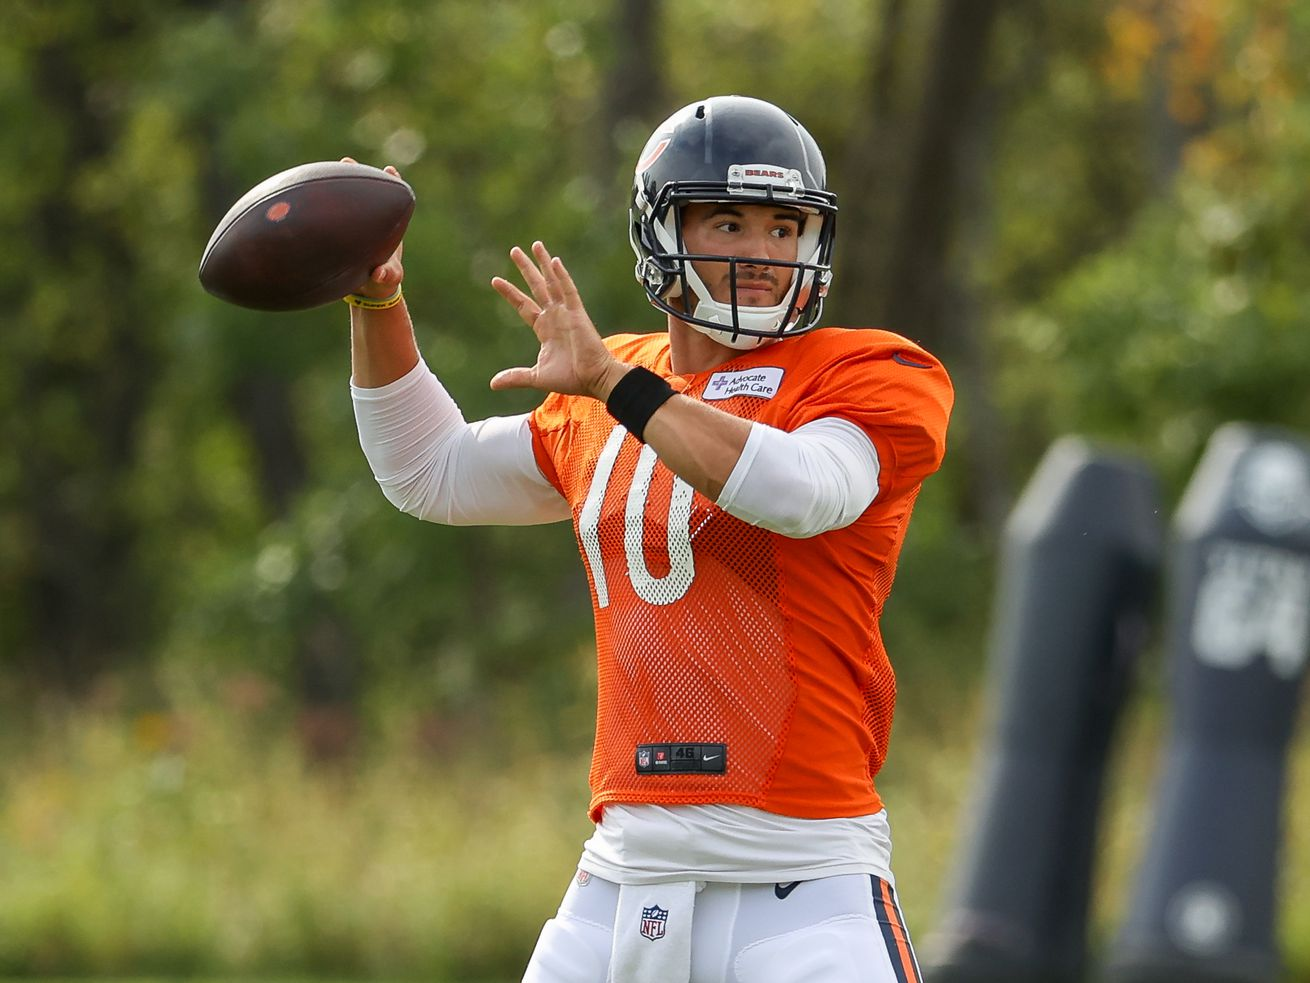 Mitch Trubisky at a crossroads —just go one way or the other